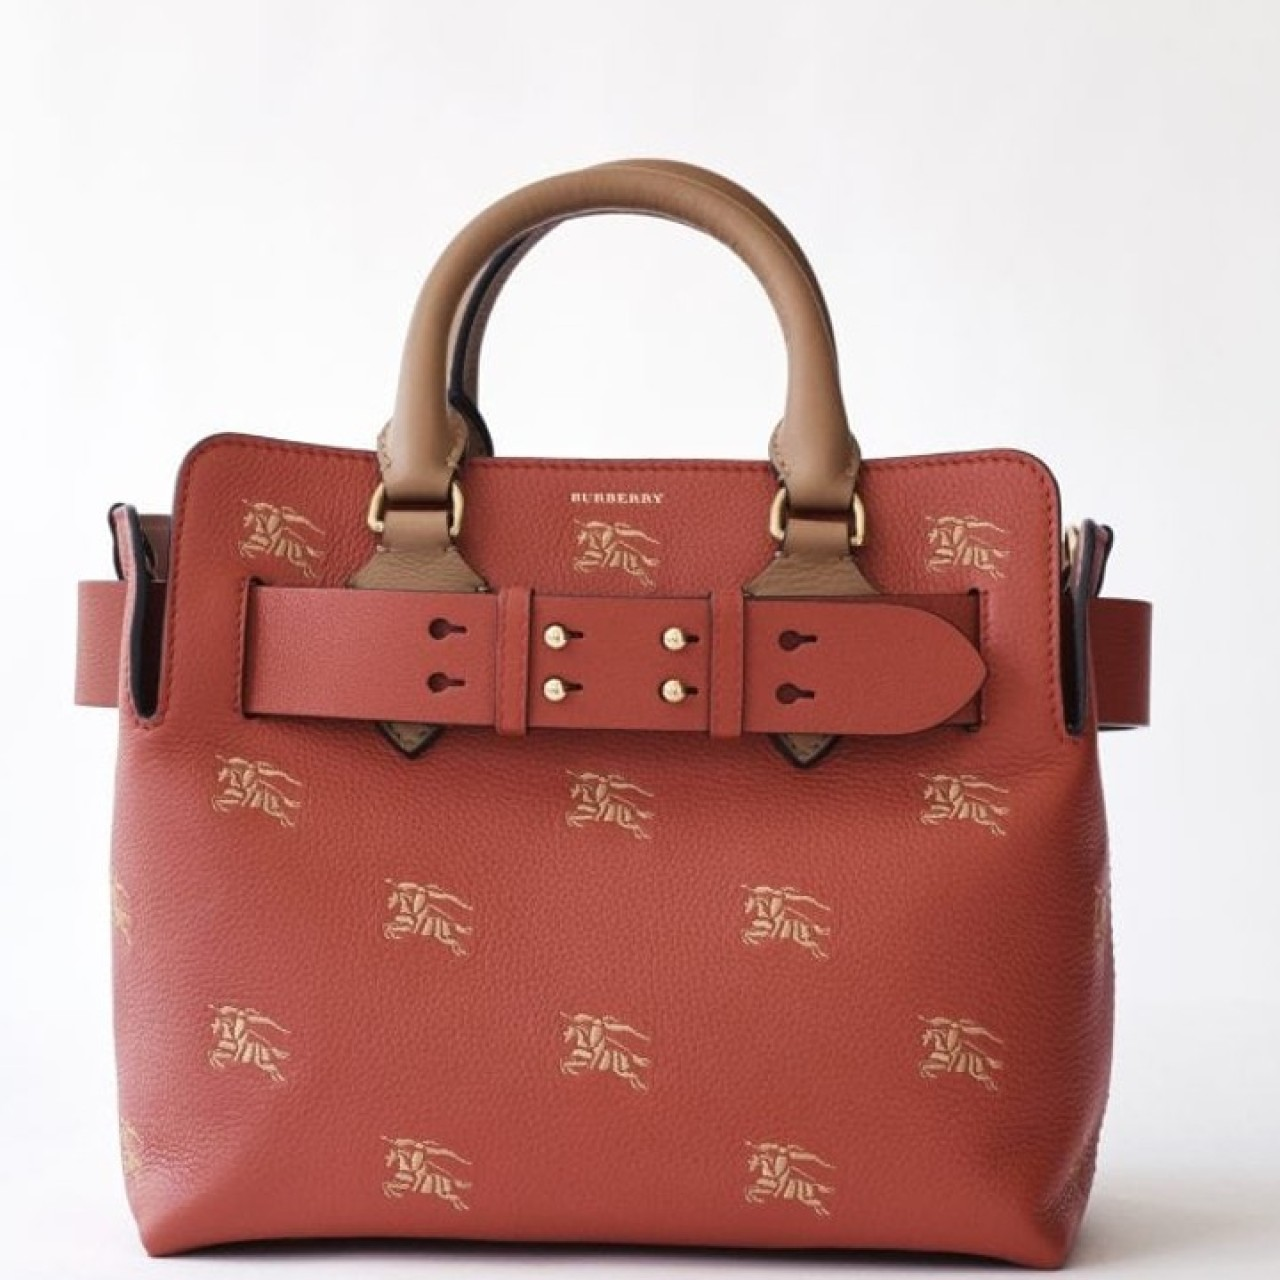 2d6b7a14bac Burberry launches two red bags in its first WeChat mini-program ...